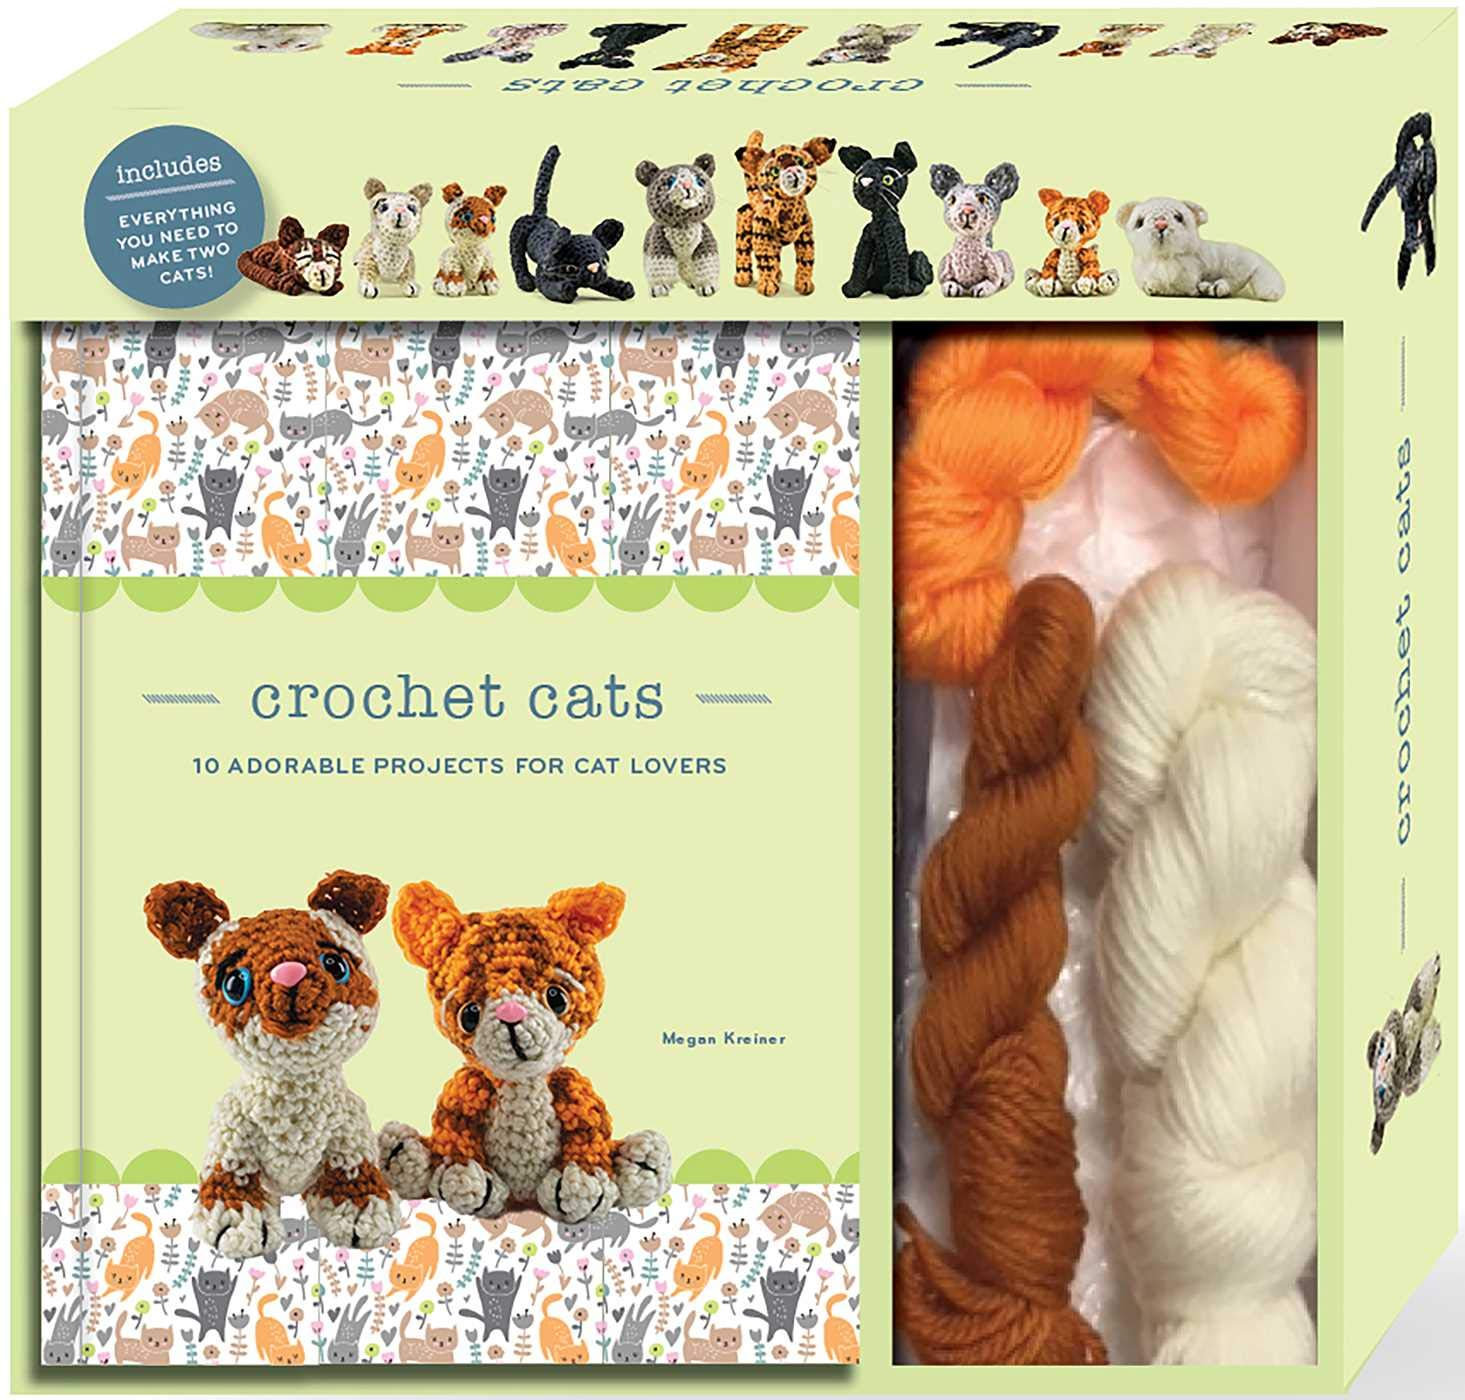 Crochet Cats: 10 Adorable Projects for Cat Lovers - Crochet Kit by Megan Kreiner